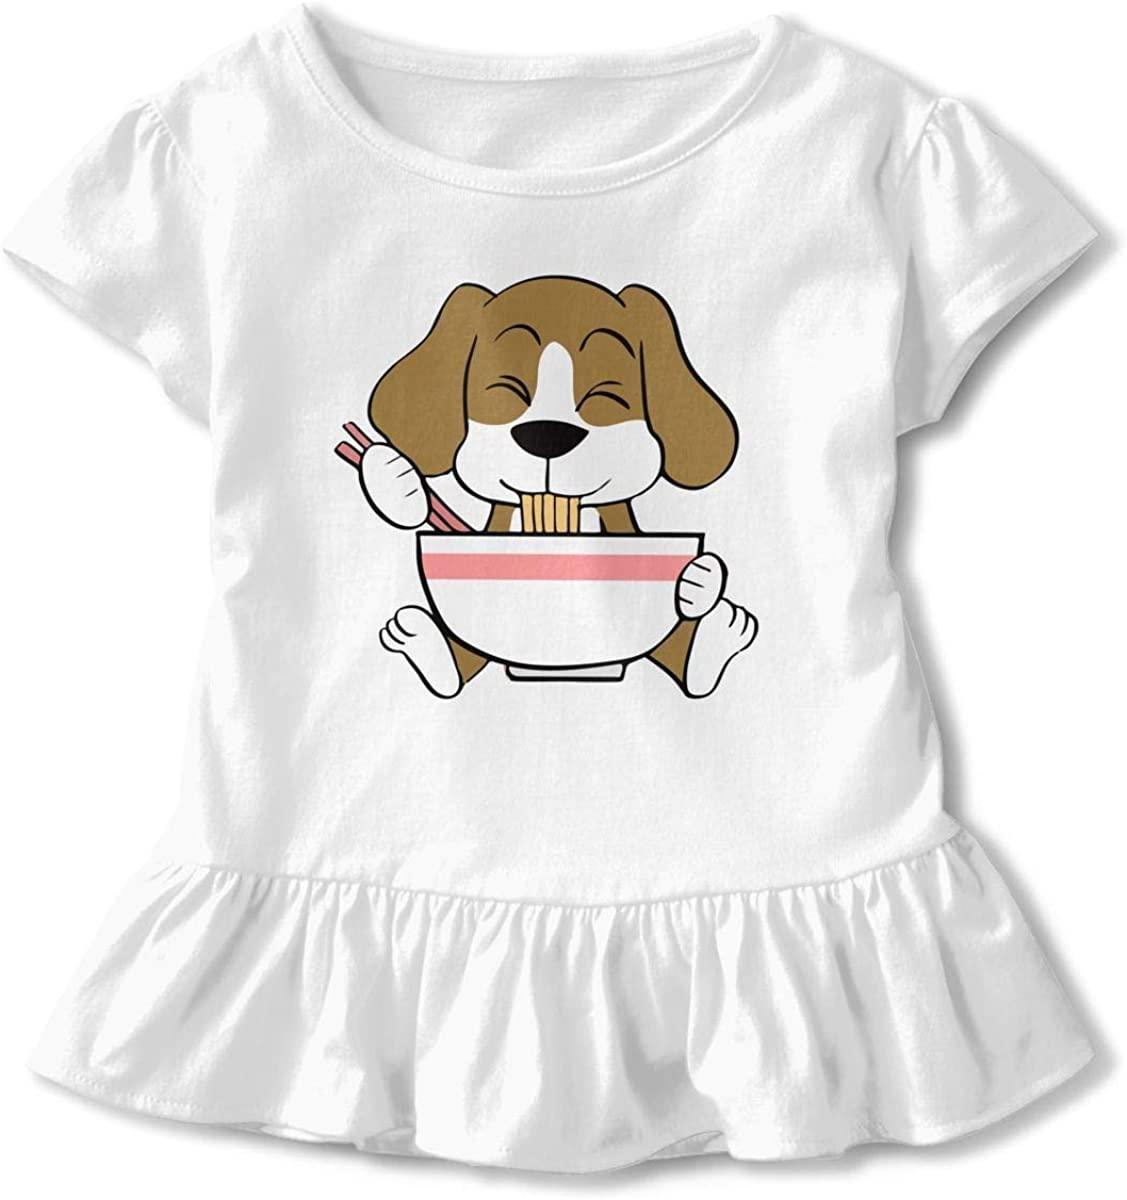 26NSHIRT Funny Kawaii Ramen Girls Short Sleeve Cotton T-Shirts